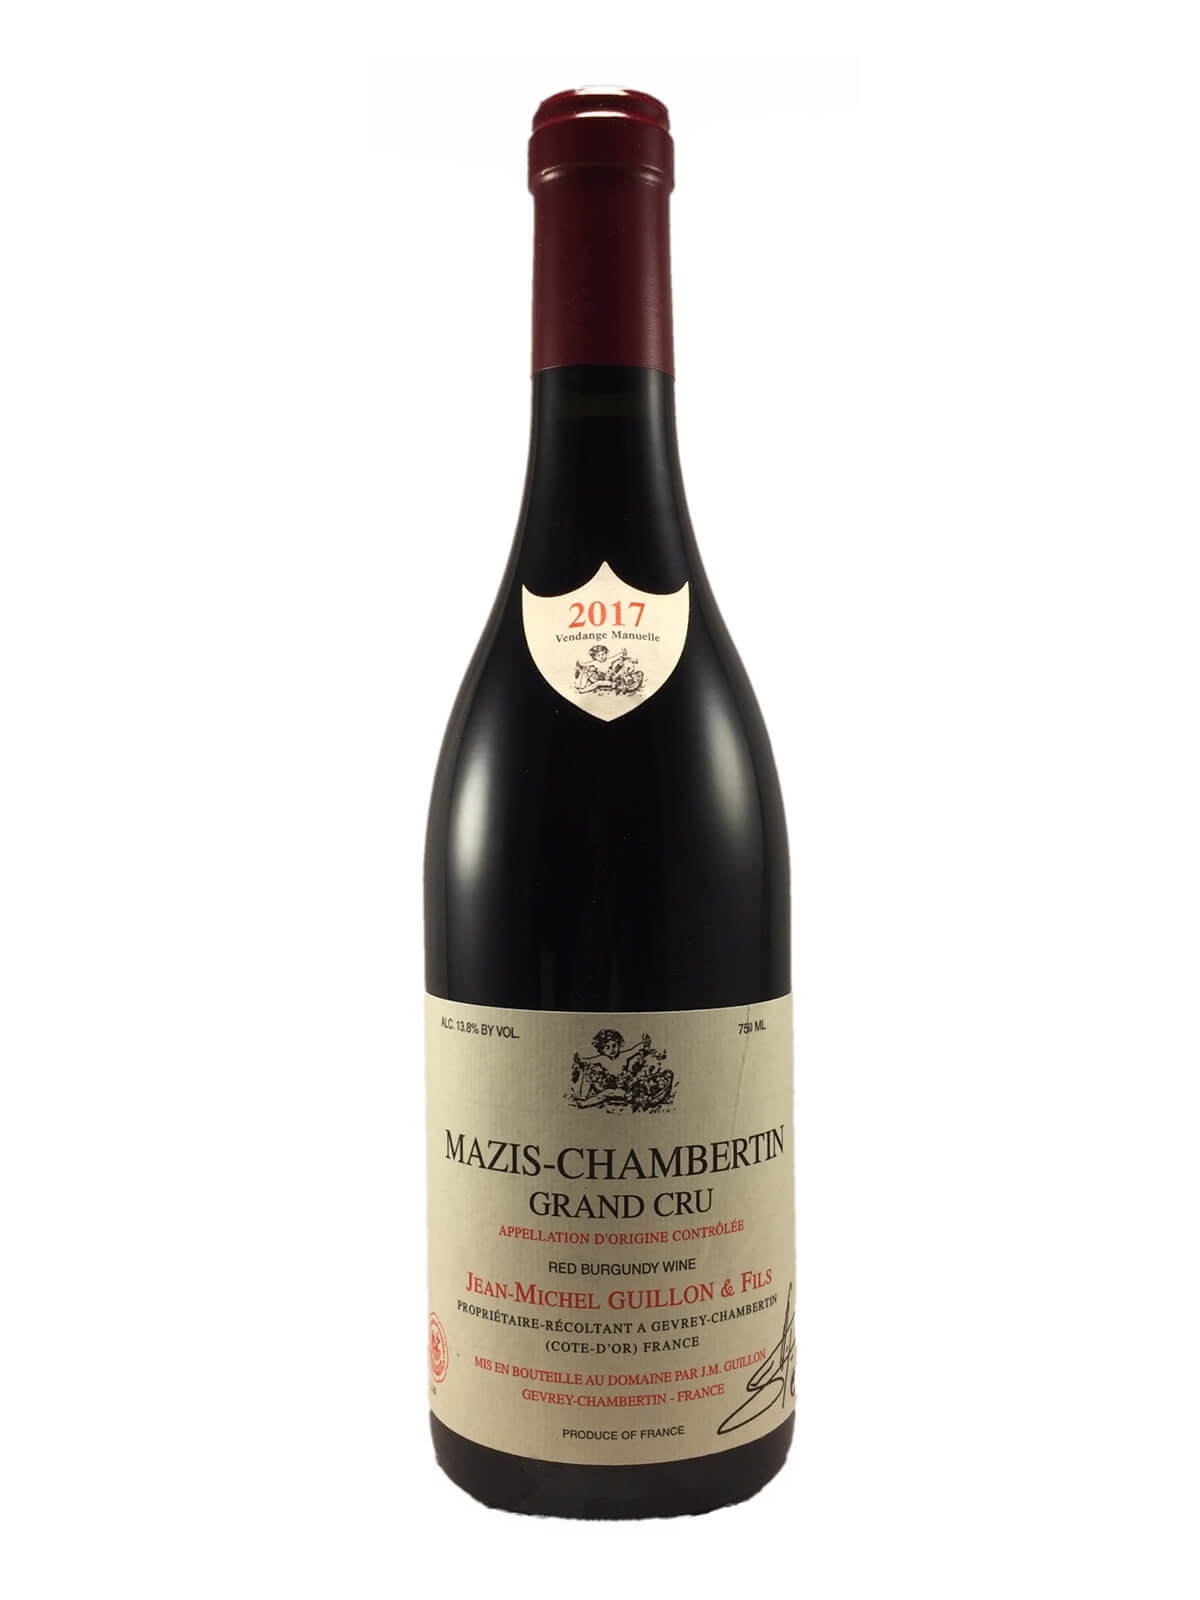 MAZIS-CHAMBERTIN Grand Cru 2017 Domaine Jean Michel GUILLON